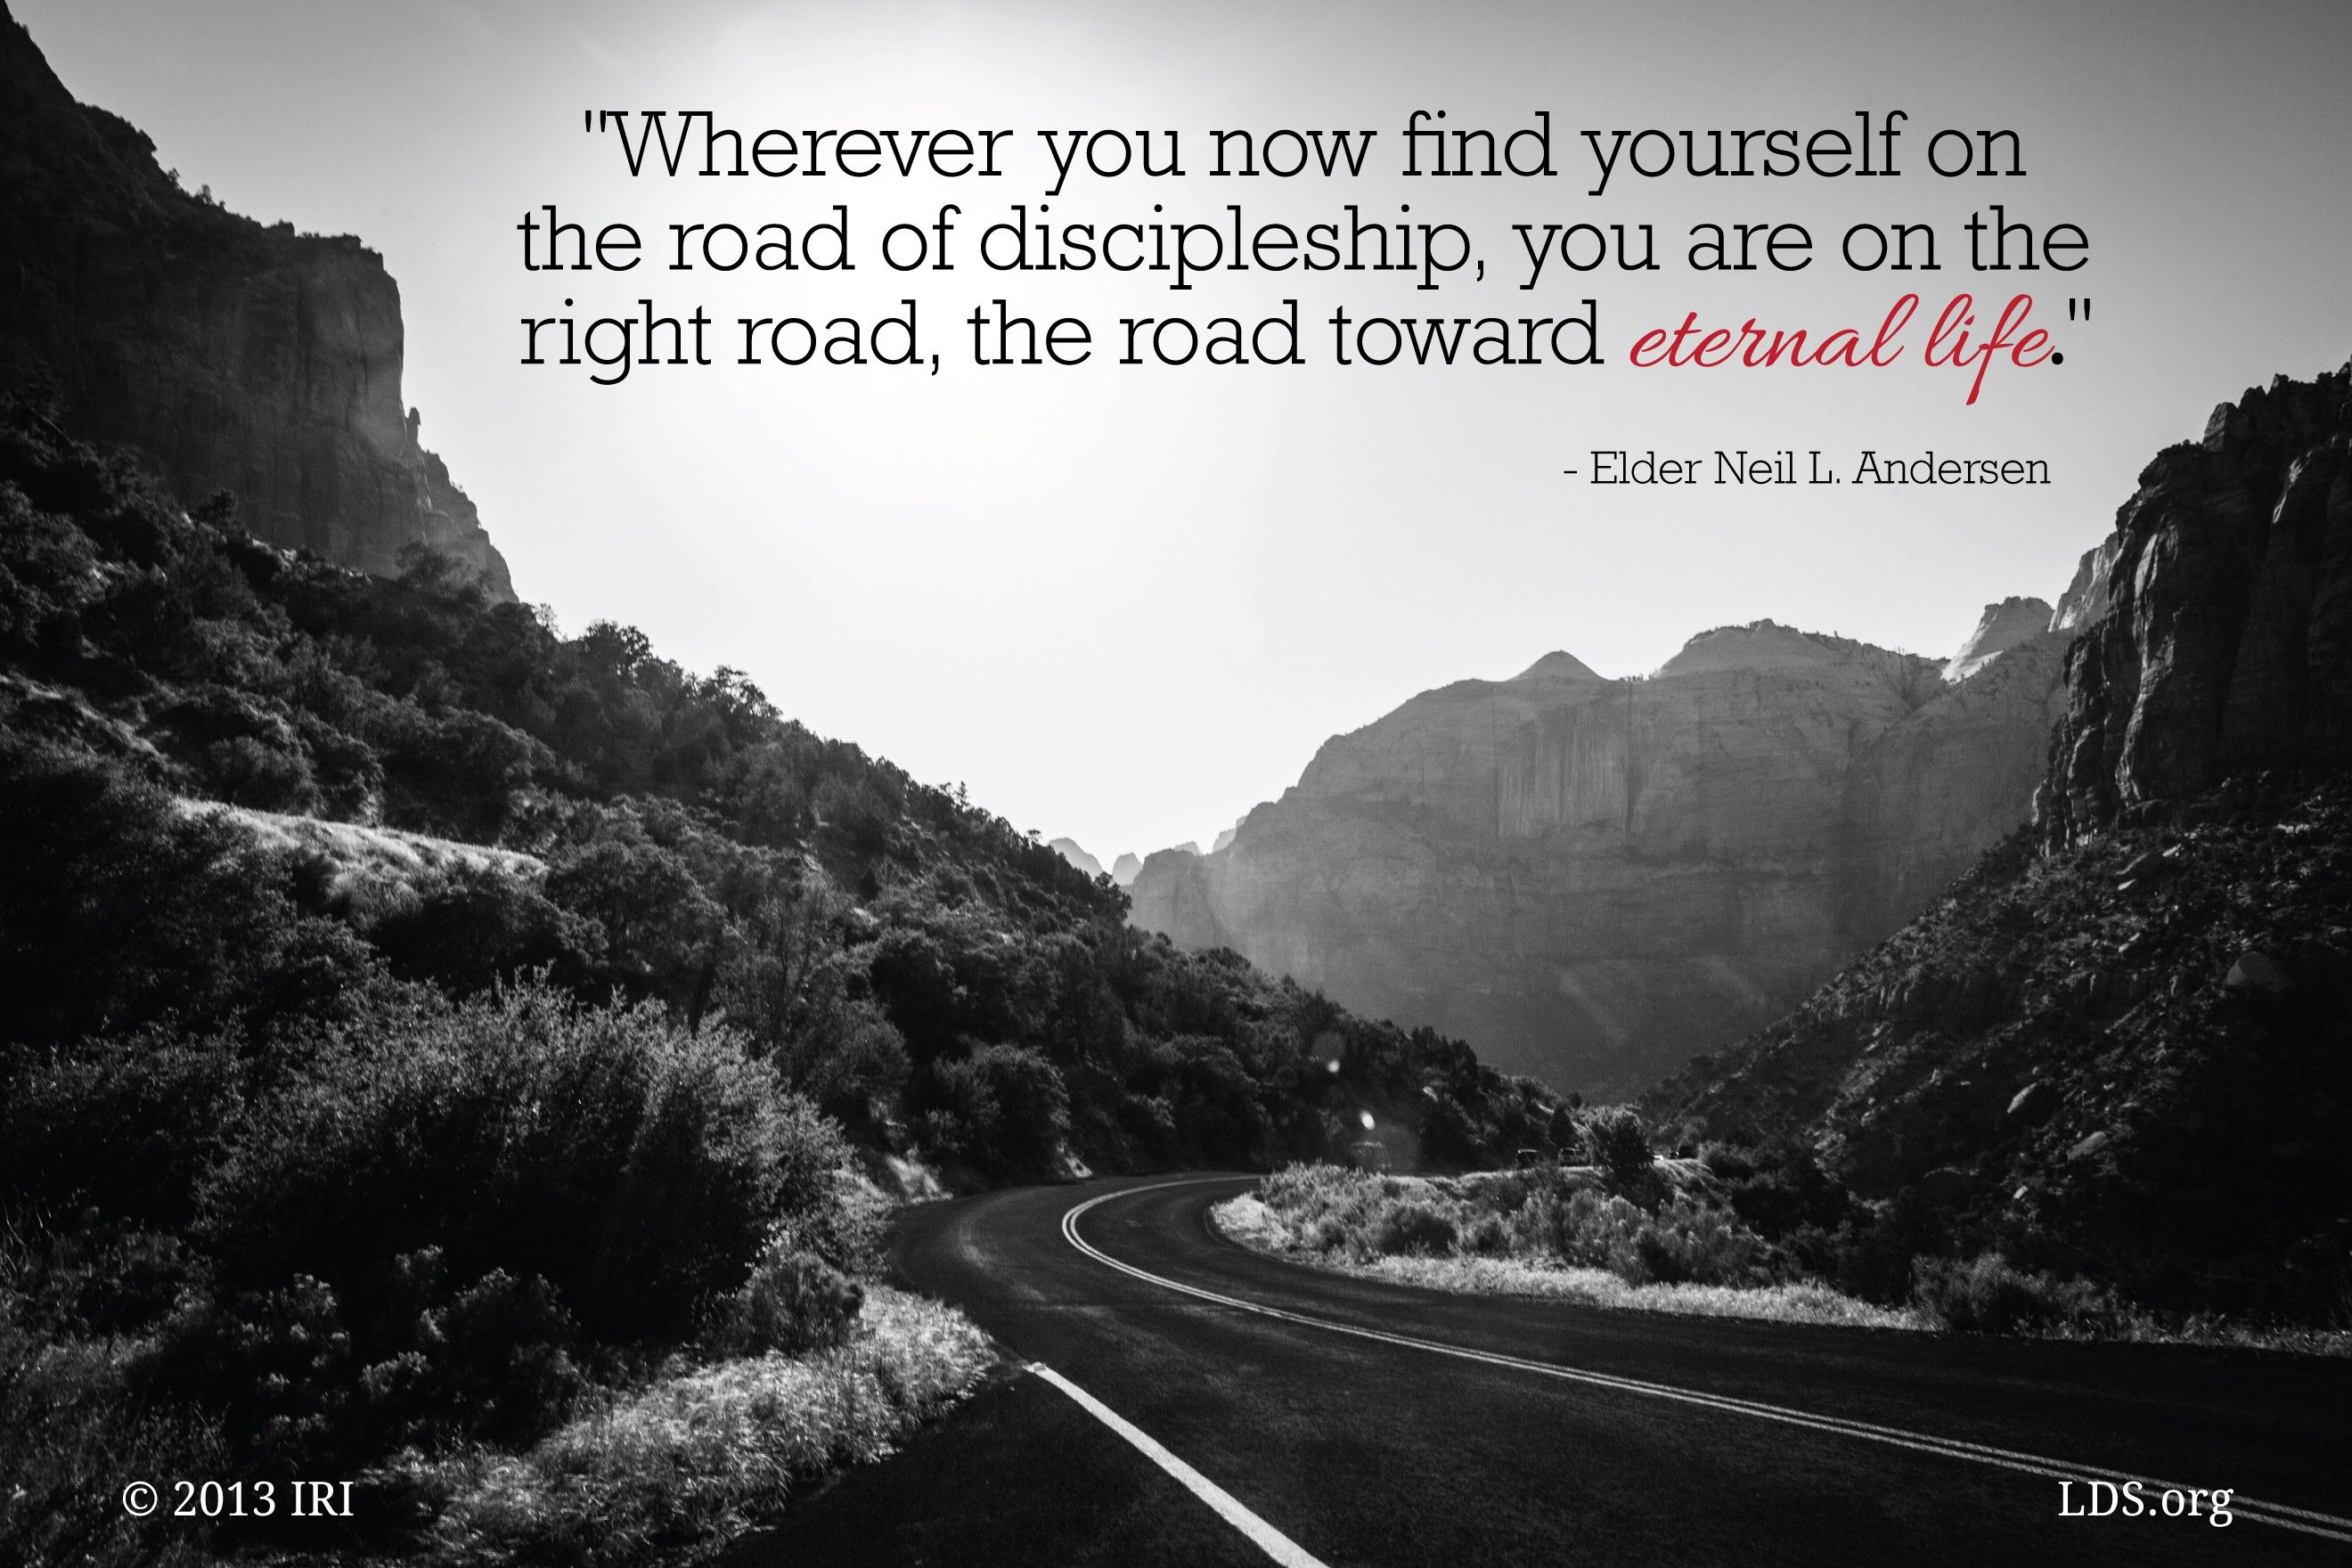 """""""Wherever you now find yourself on the road of discipleship, you are on the right road, the road toward eternal life.""""—Elder Neil L. Andersen, """"What Thinks Christ of Me?"""""""